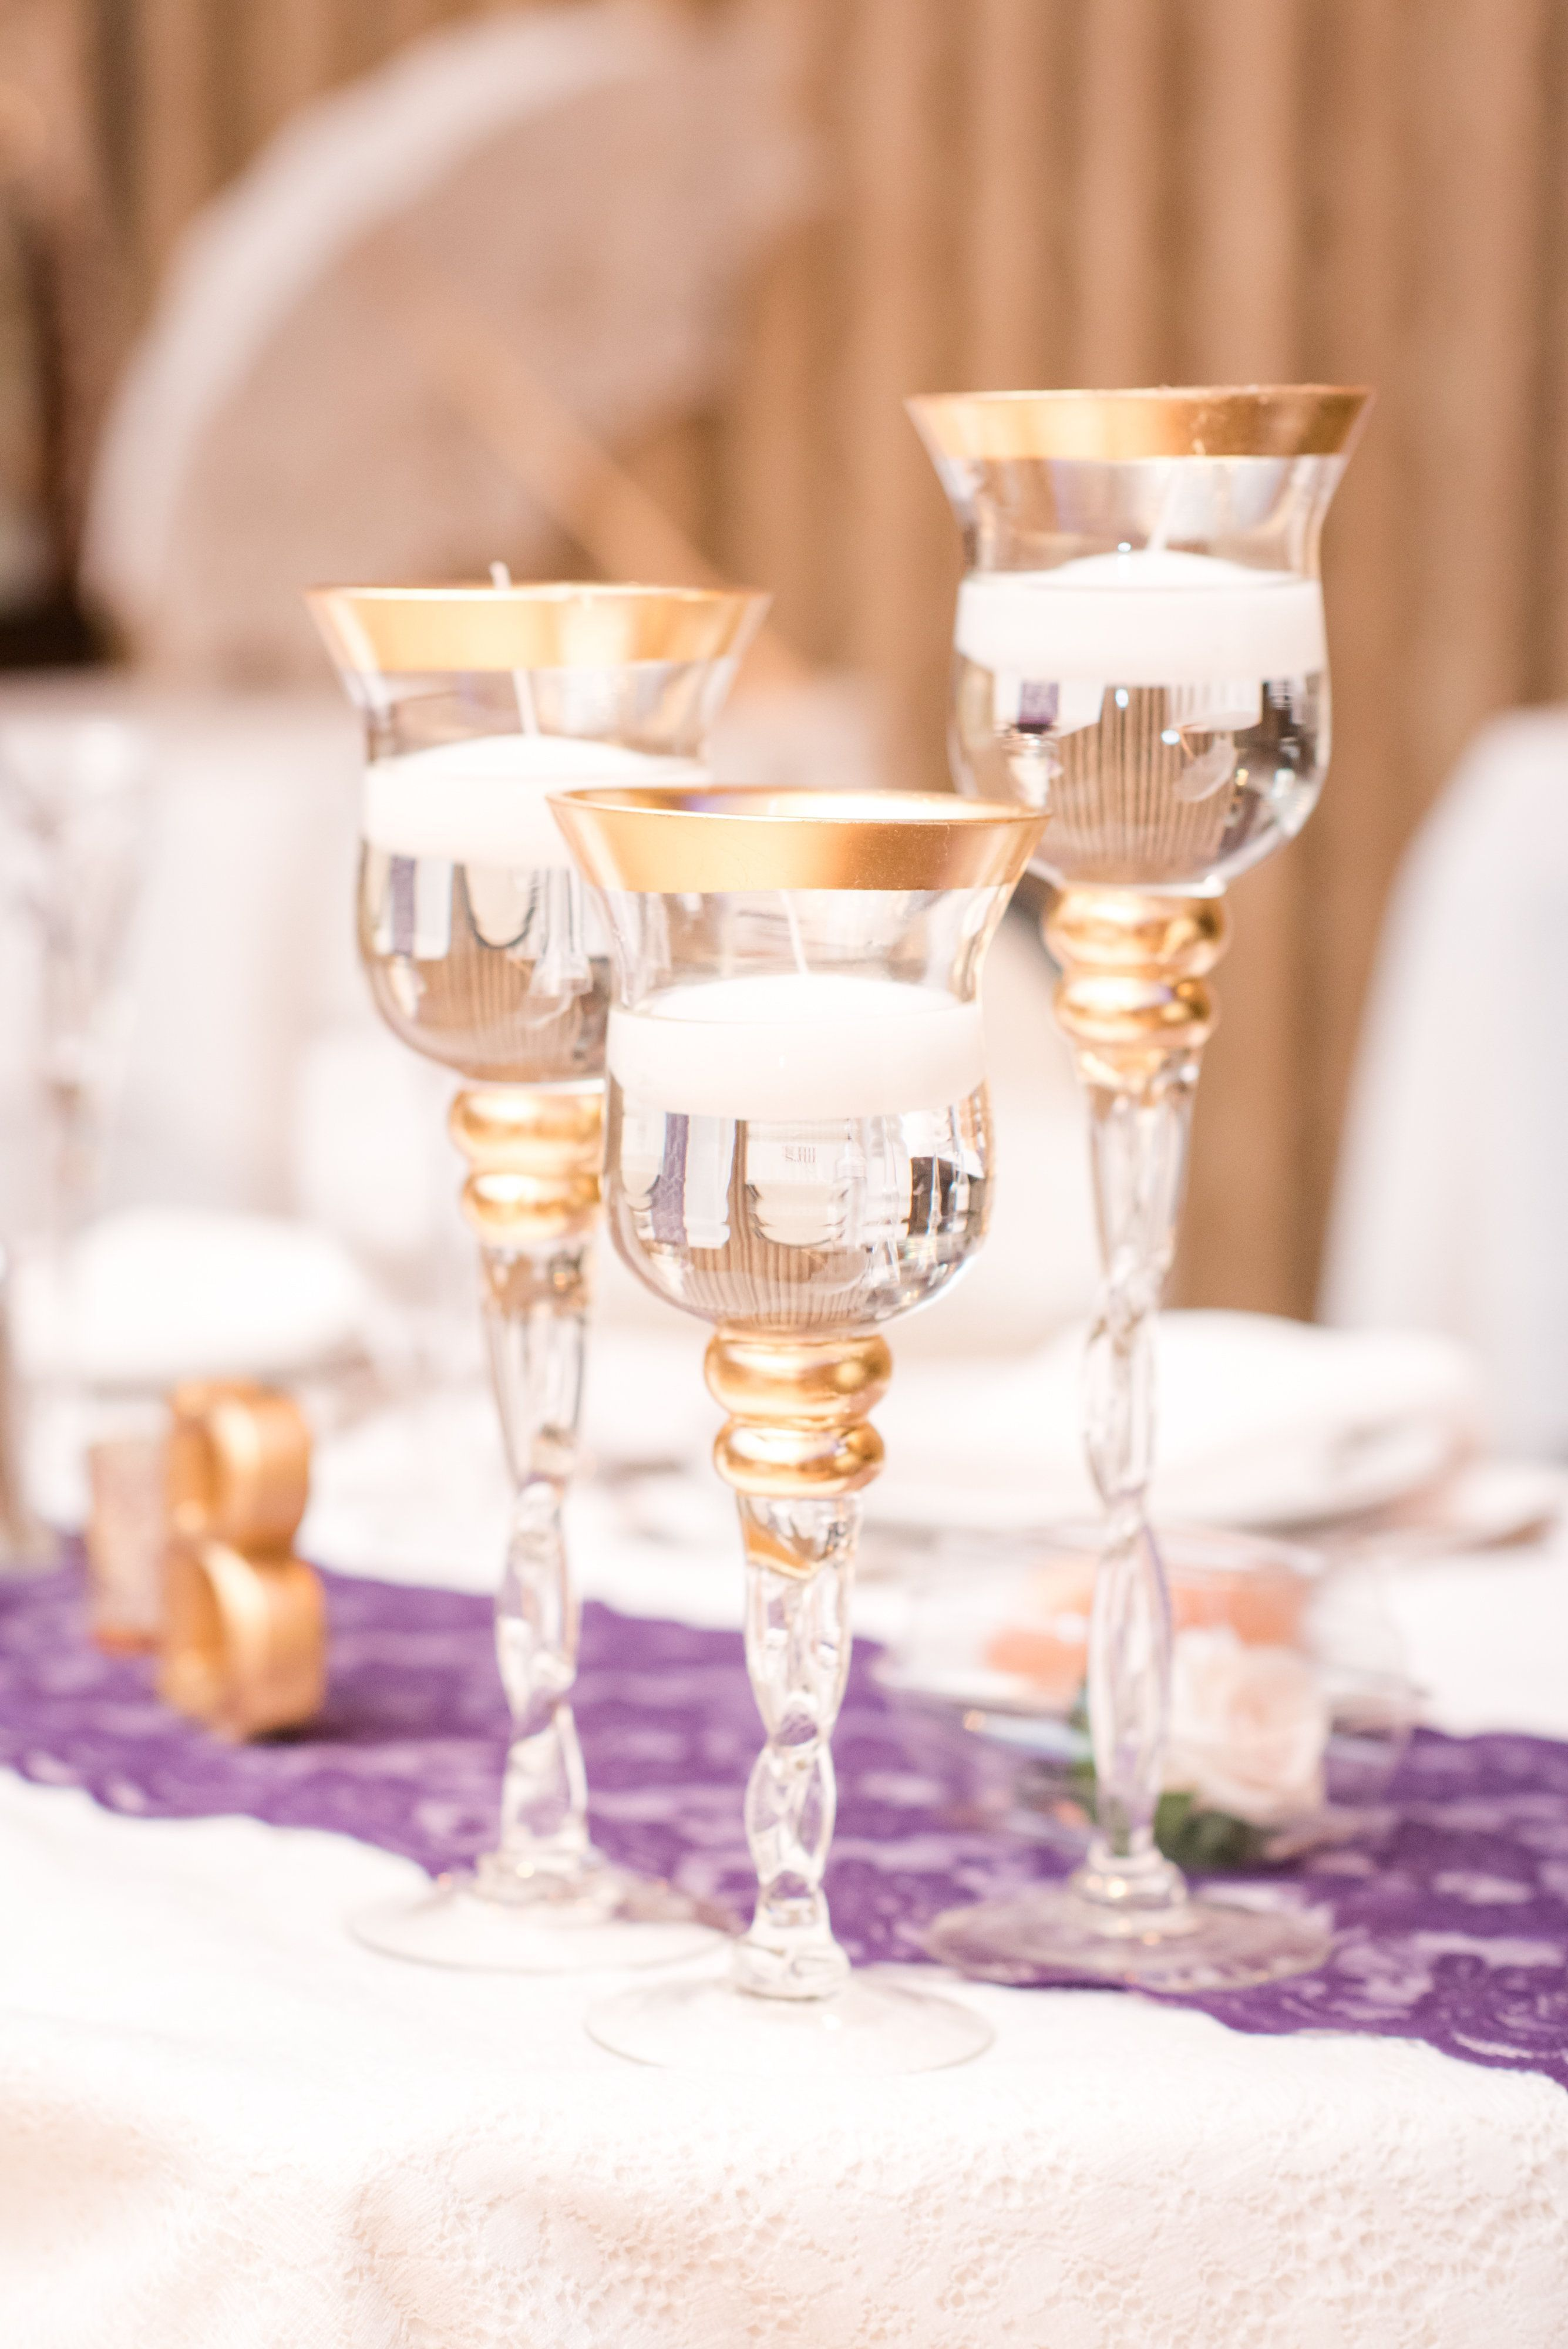 All white and gold wedding decor  White and gold candle centerpieces  Classic NJ wedding  The Manor